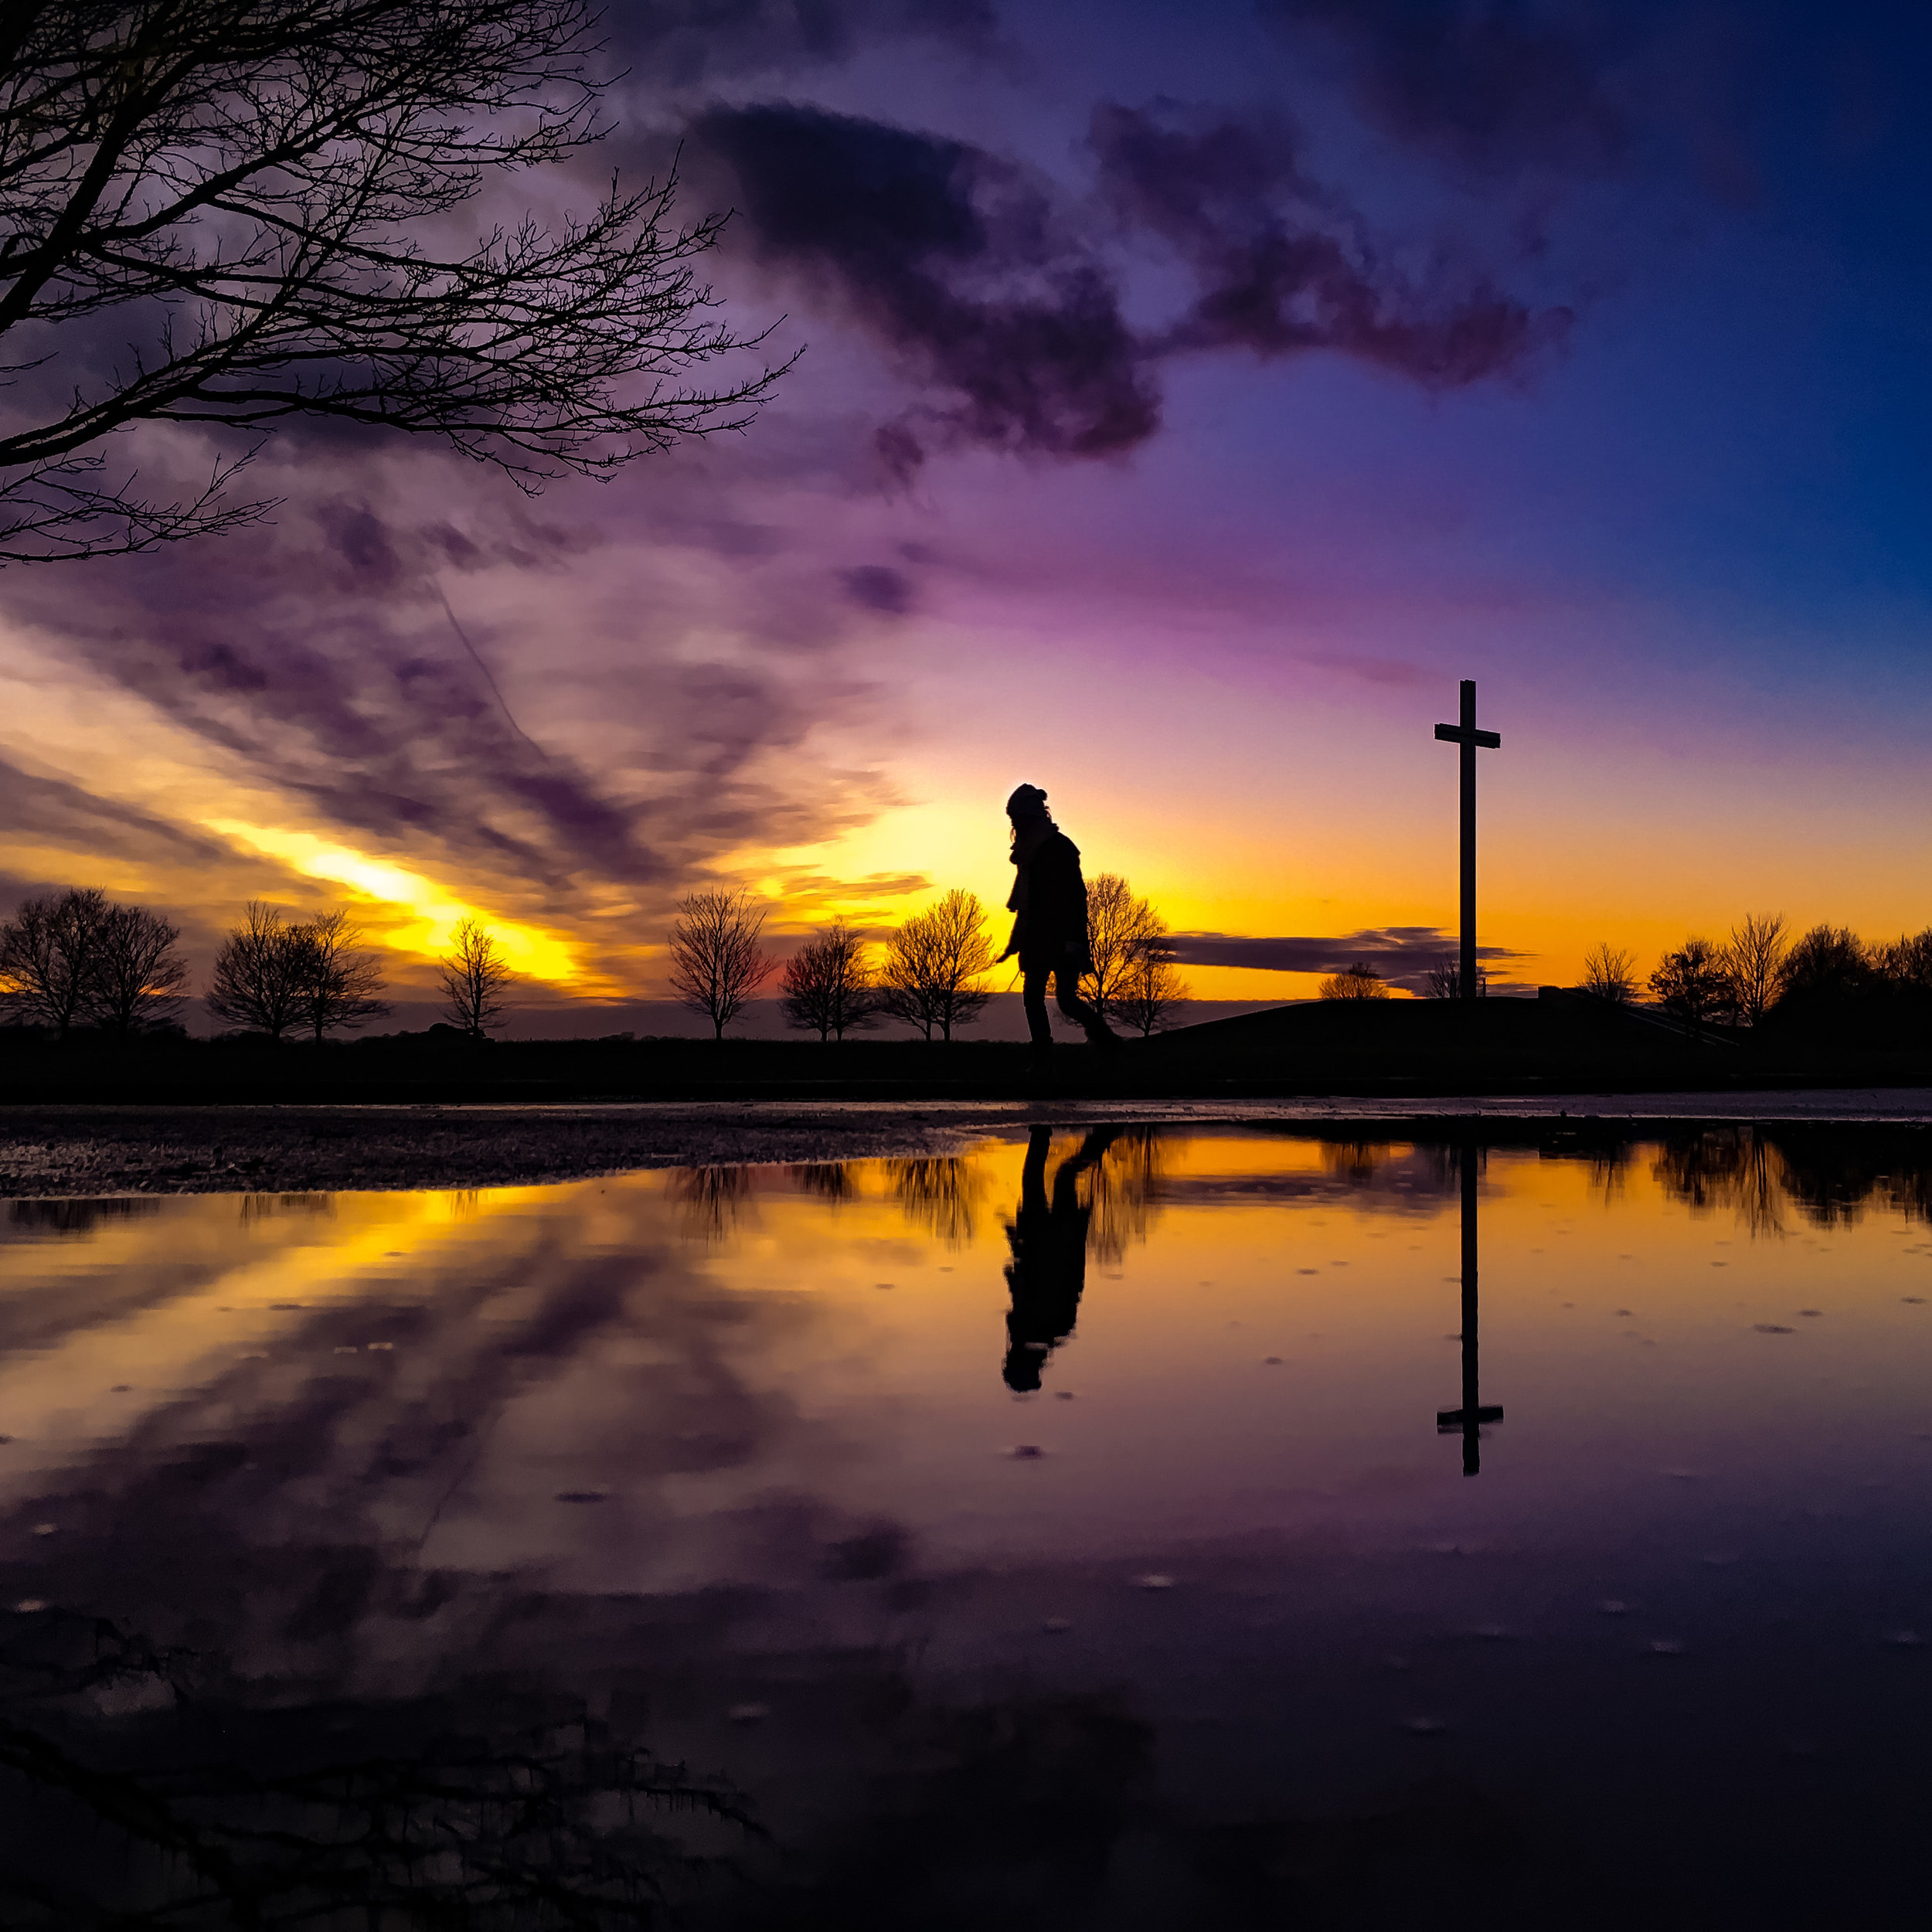 Reflections - at the Papal Cross at dusk. The Phoenix Park, Dublin.